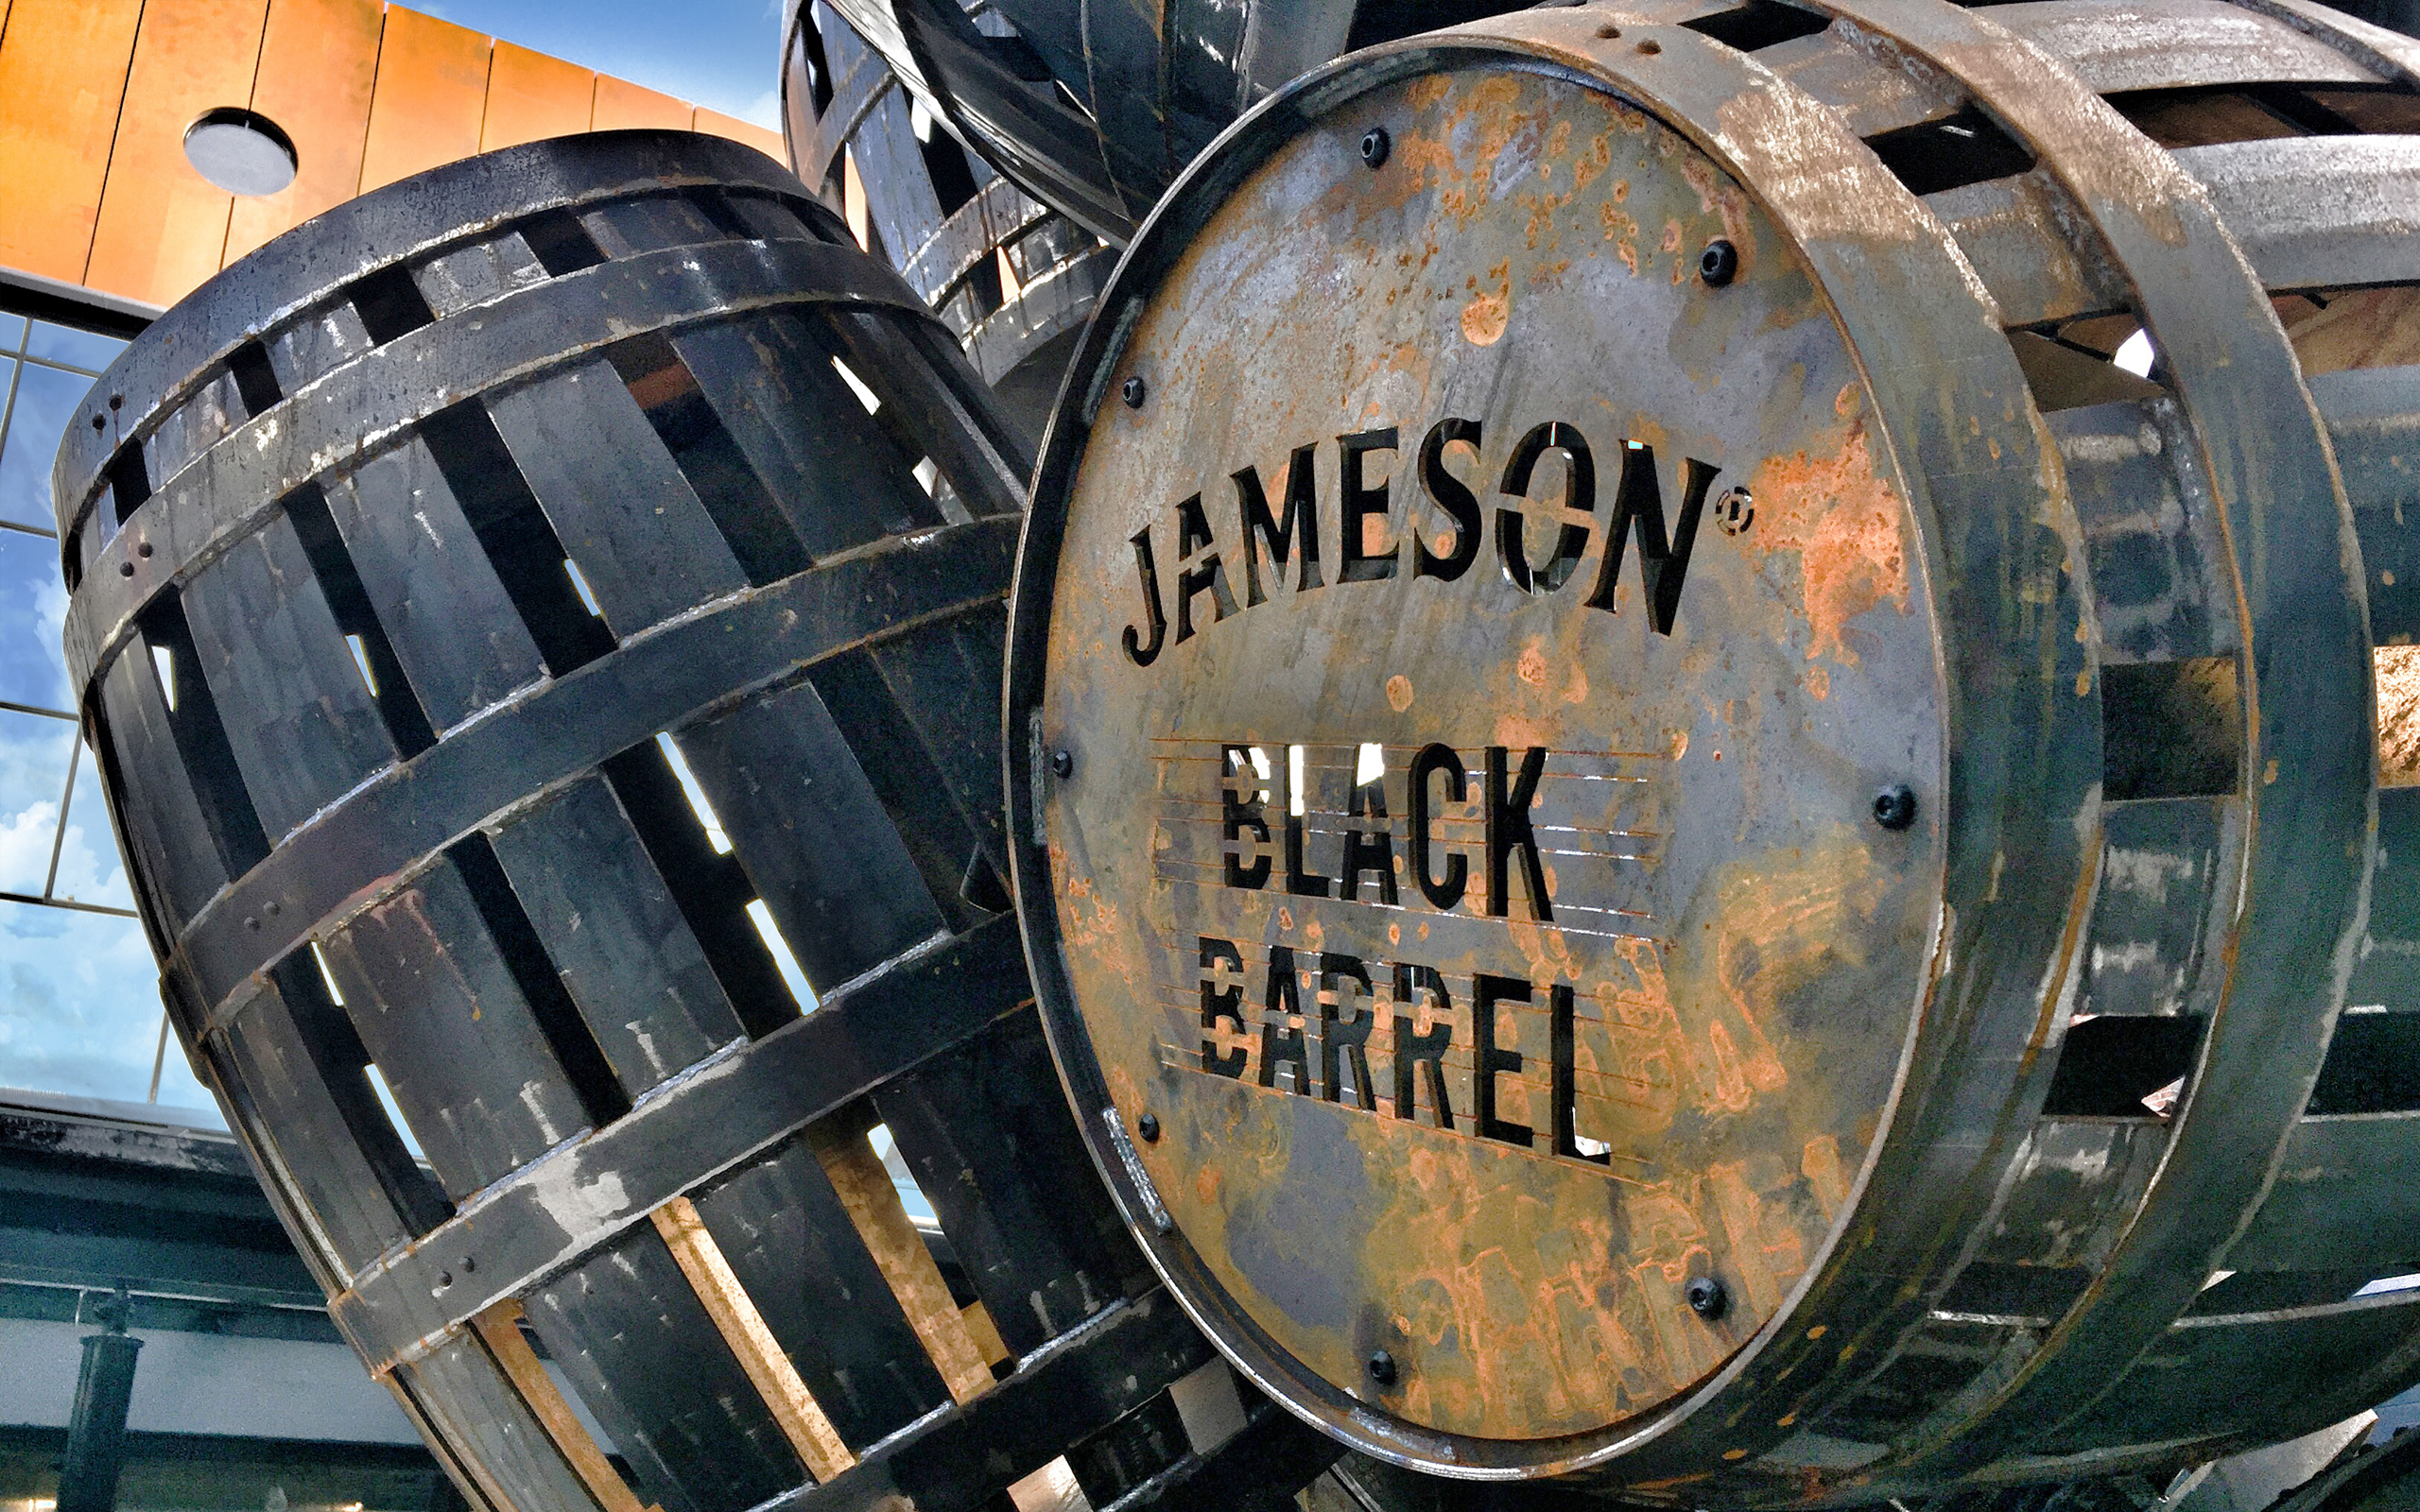 Jameson Black Barrel Sculpture